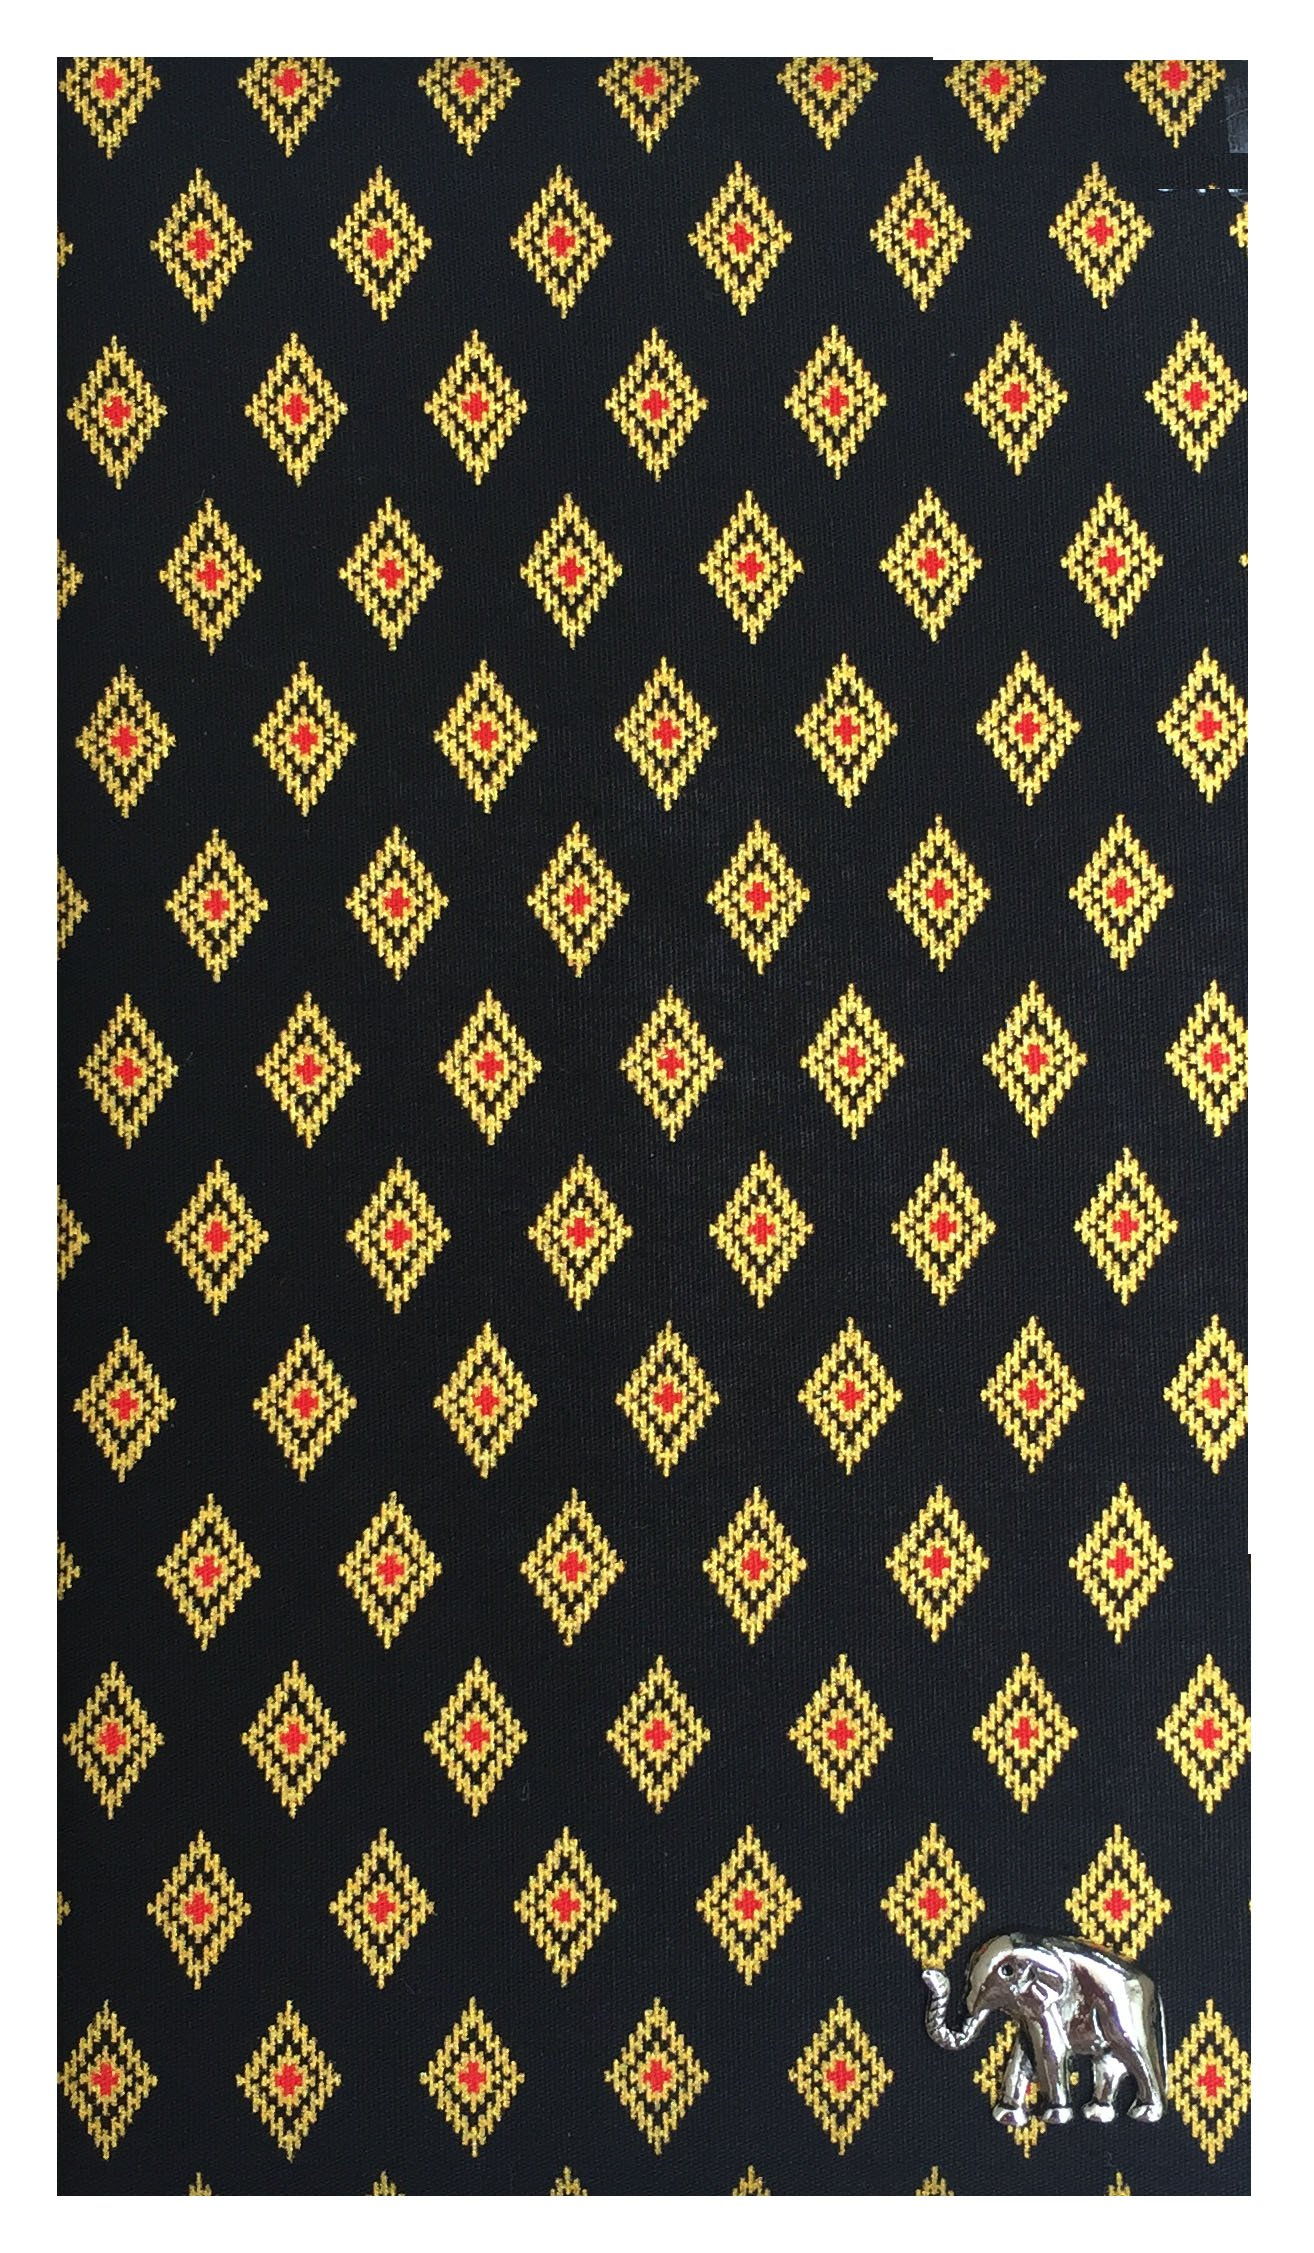 Black Thai Patterned Guest Check Presenter, Check Book Holder for Restaurant, Checkbook Cover, Waitstaff Organizer, Server Book for Waiters with Money Pocker (With Plastic Cover) by Kathy